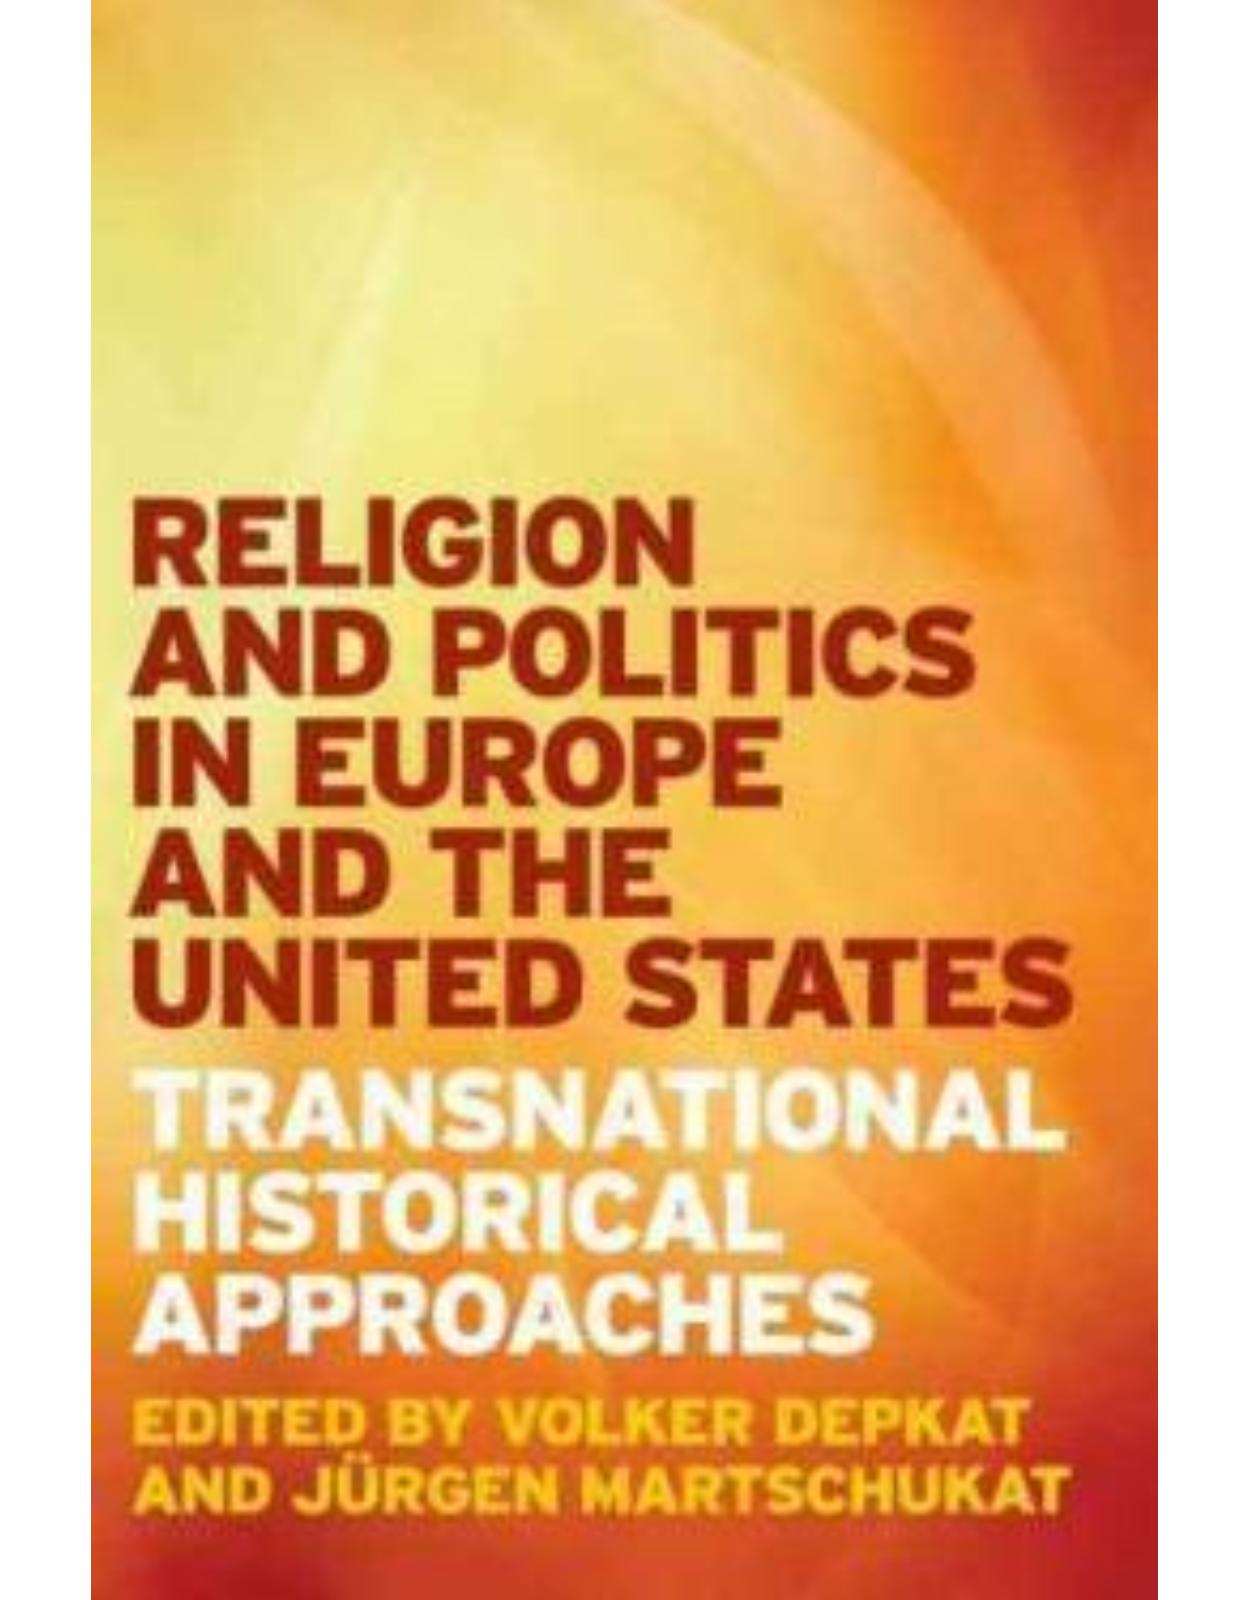 Religion and Politics in Europe and the United States. Transnational Historical Approaches